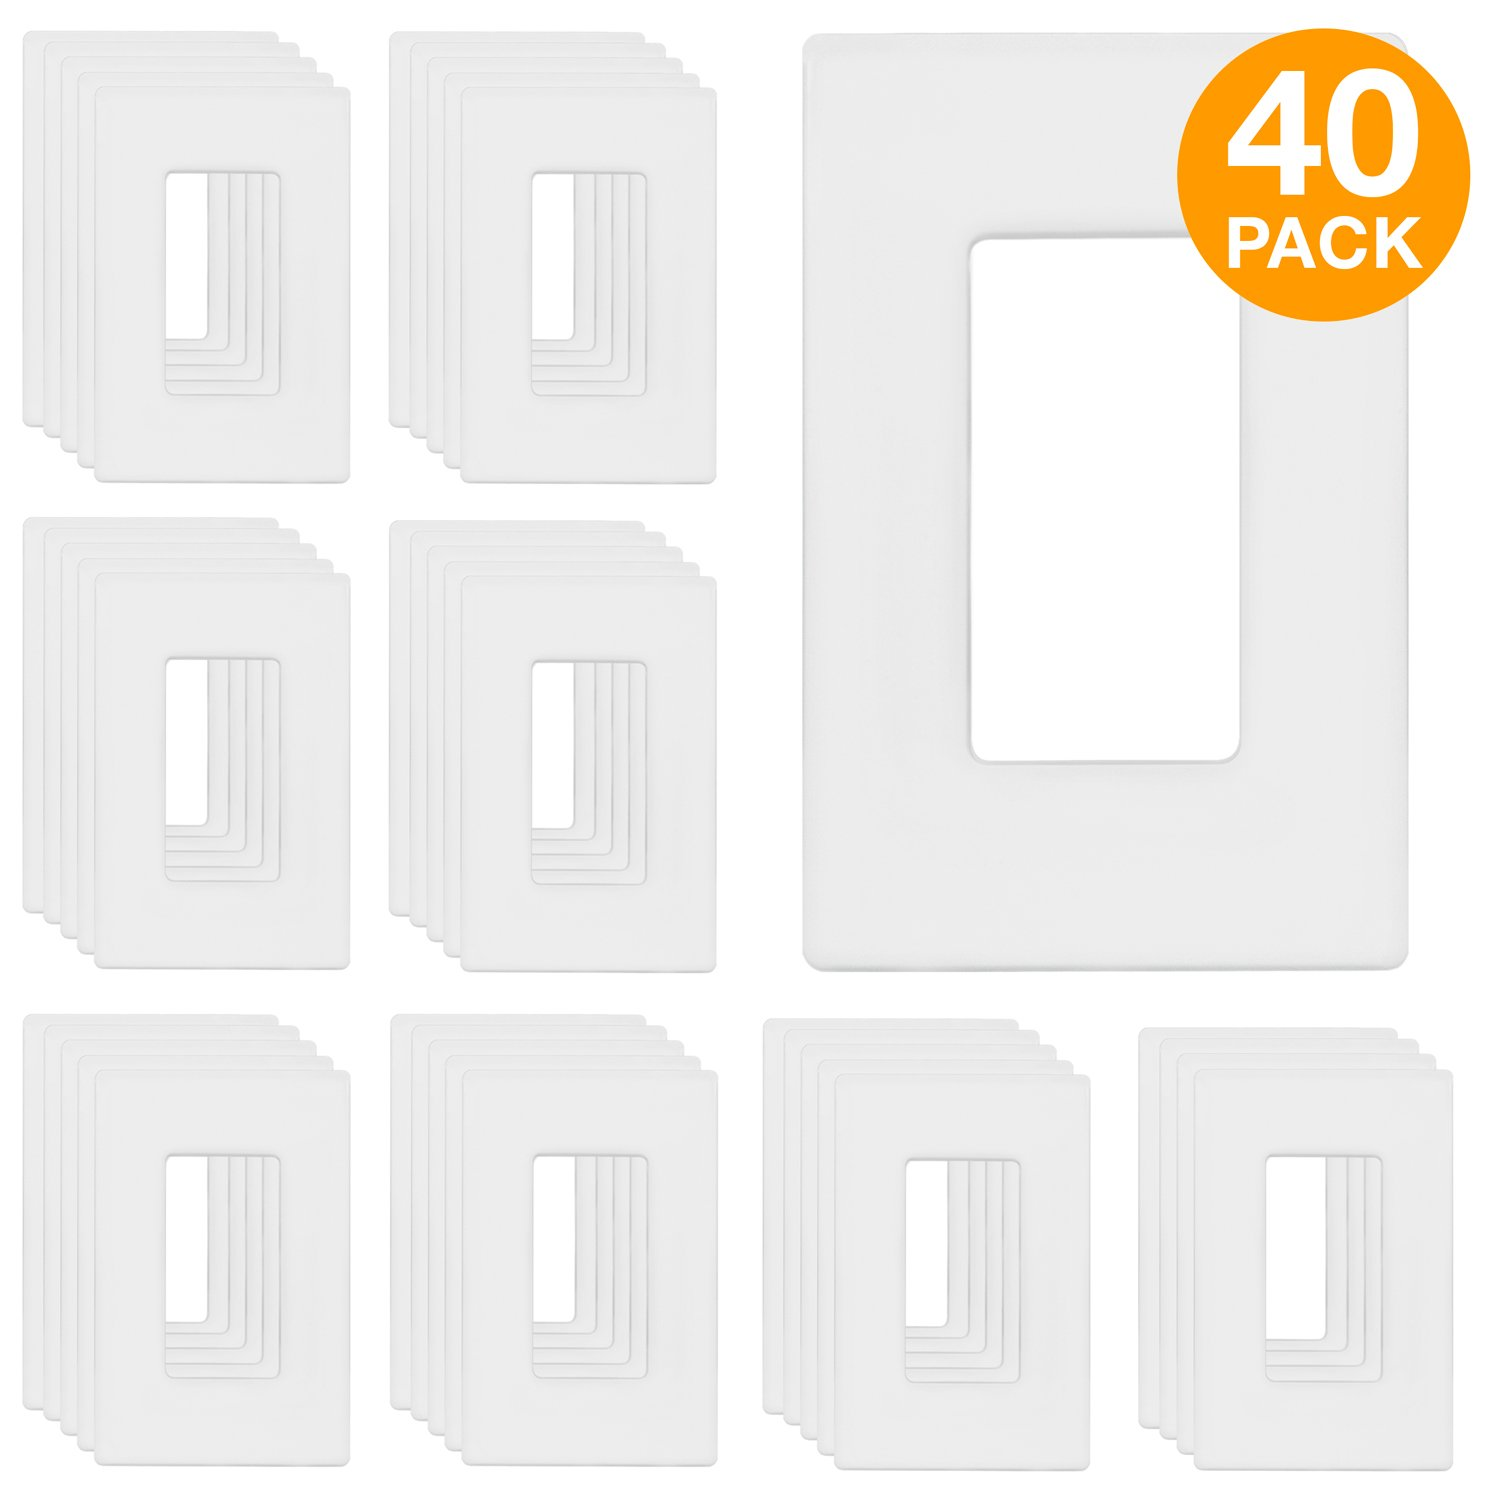 ENERLITES Screwless Decorator Wall Plates Child Safe Outlet Covers, Size 1-Gang 4.68'' H x 2.93'' L, Unbreakable Polycarbonate Thermoplastic, SI8831-W-40PCS, White (40 Pack) by ENERLITES